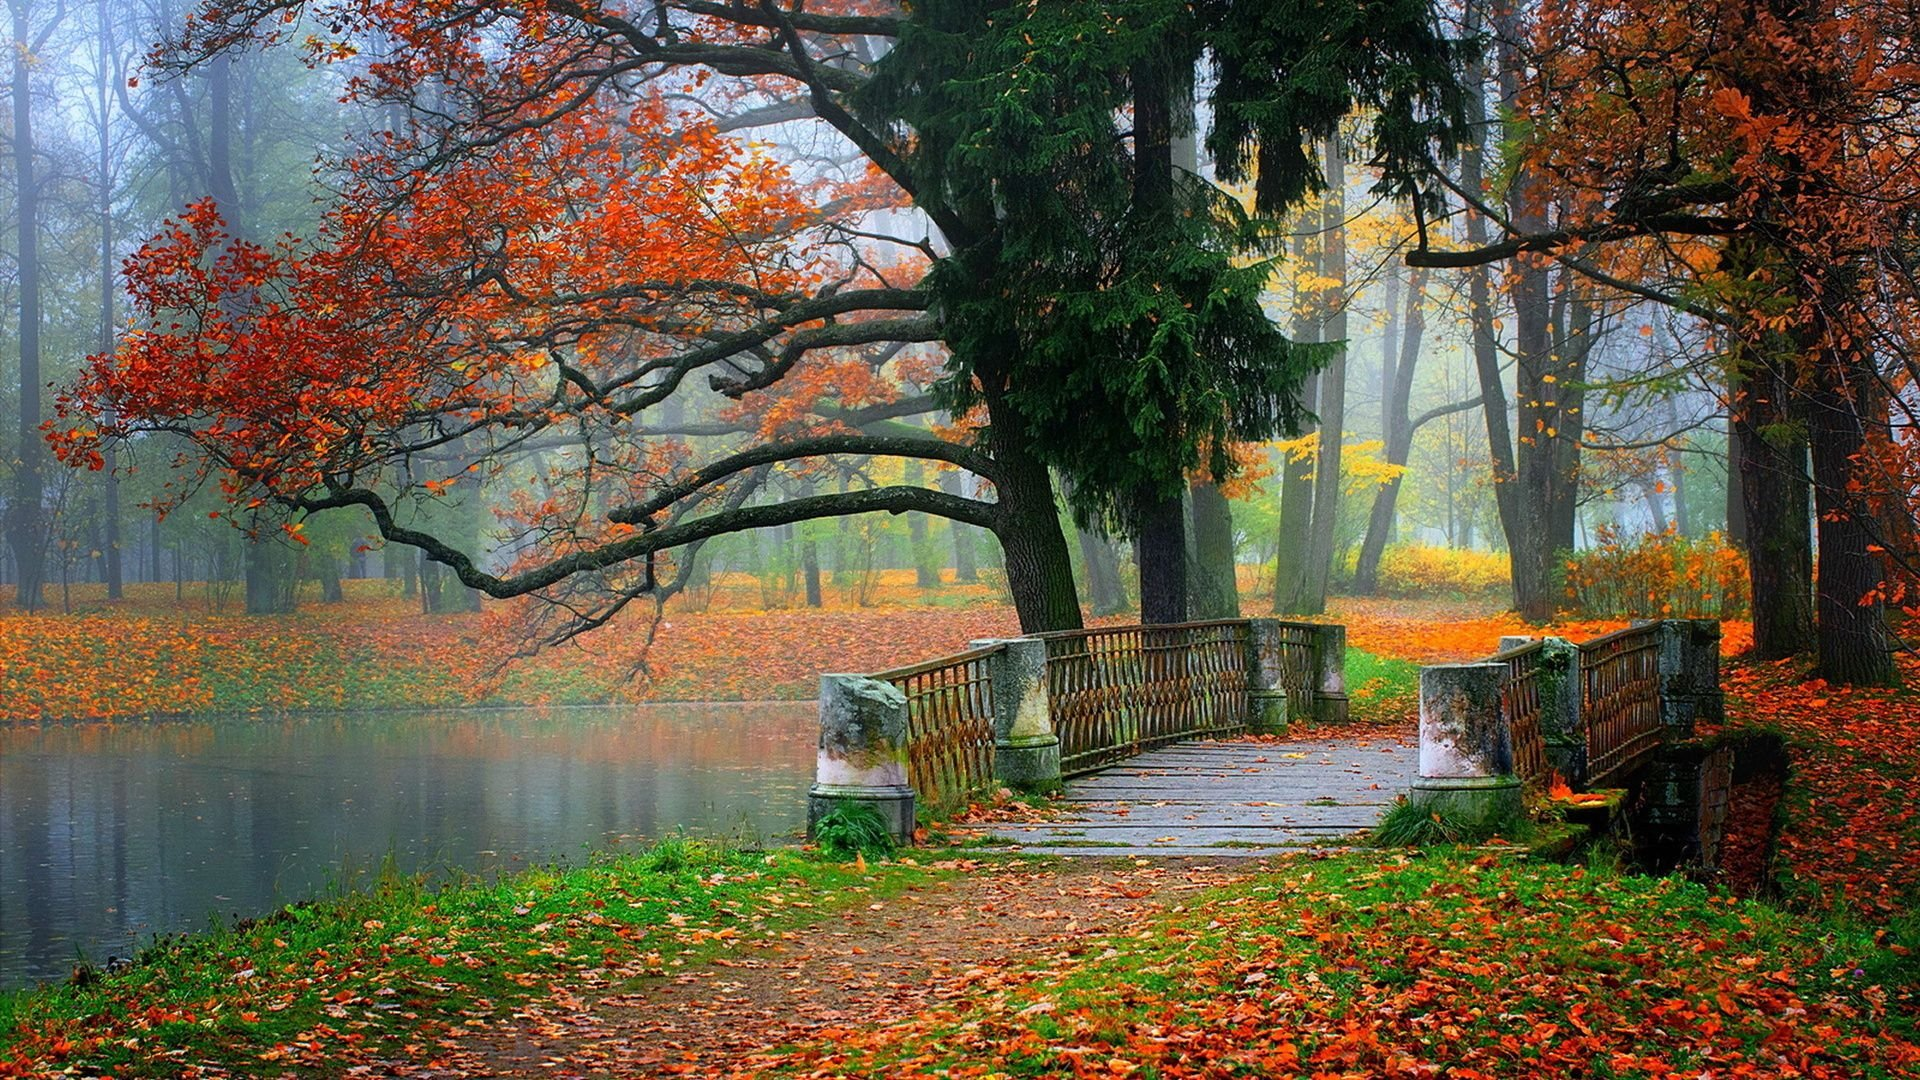 Autumn tree leaves beauty nature landscape lake bridge wallpaper ...